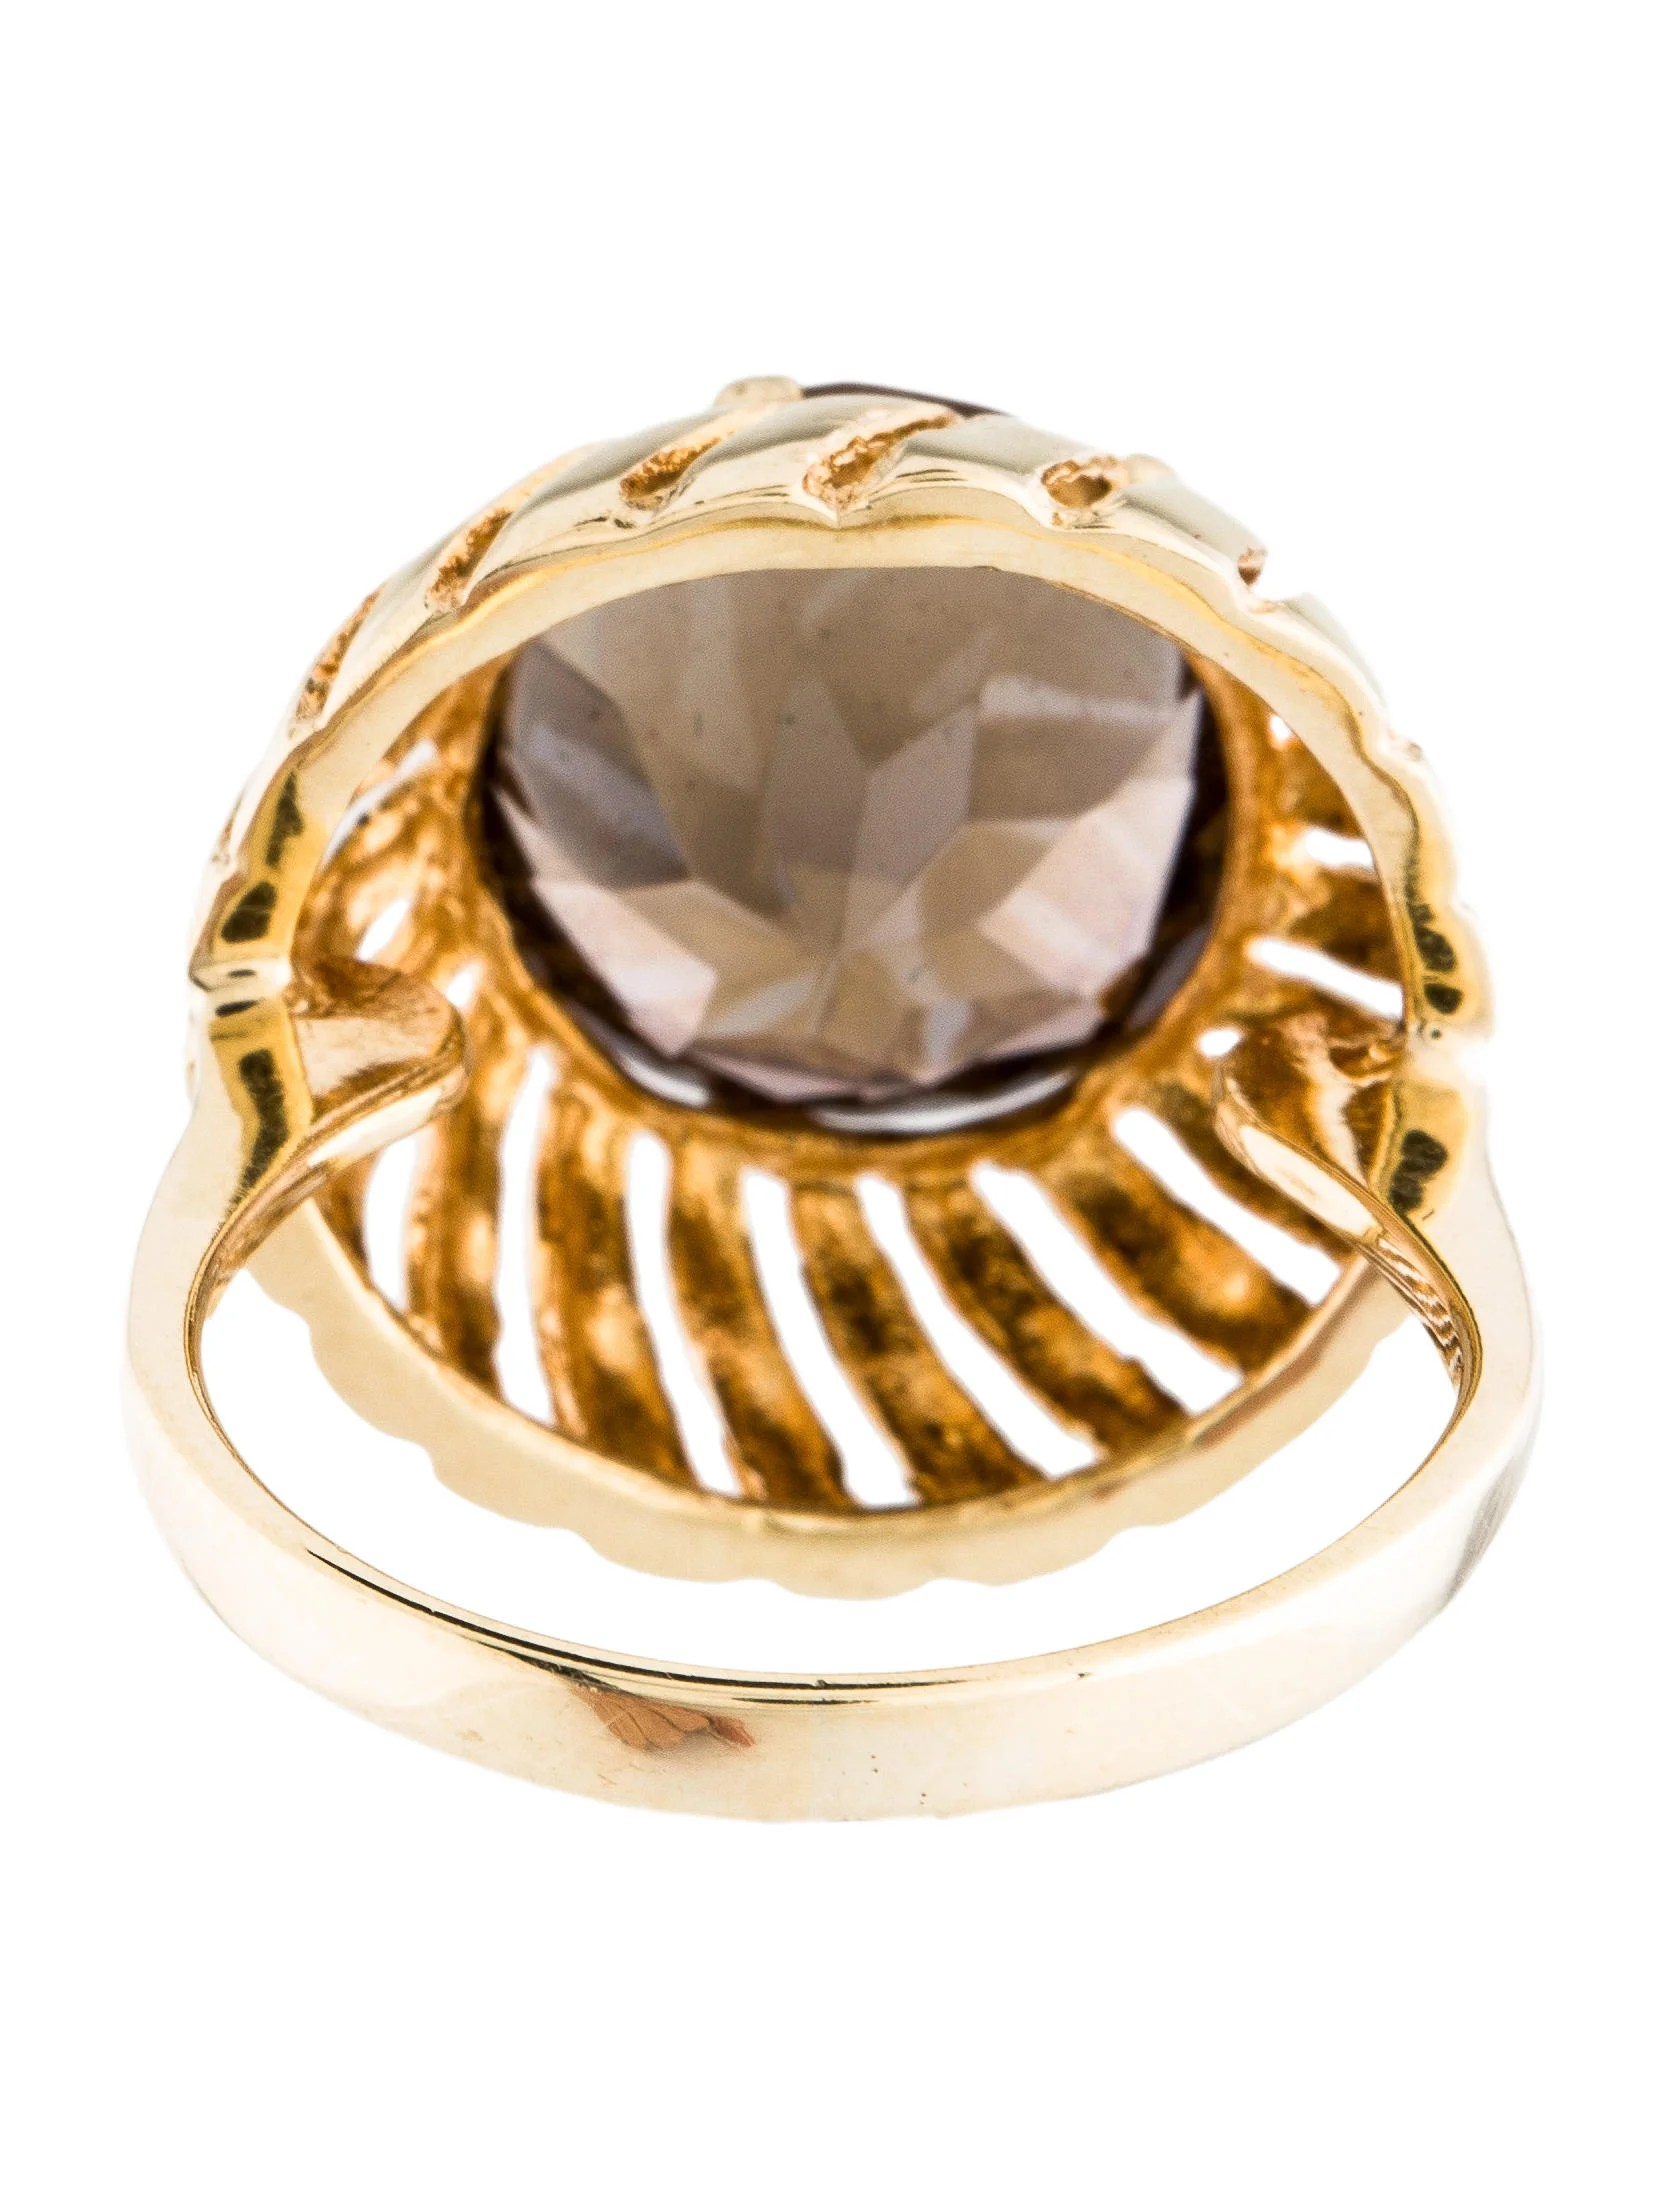 round card table and chairs luxury accent 14k smoky quartz ring - rings rring34917 | the realreal